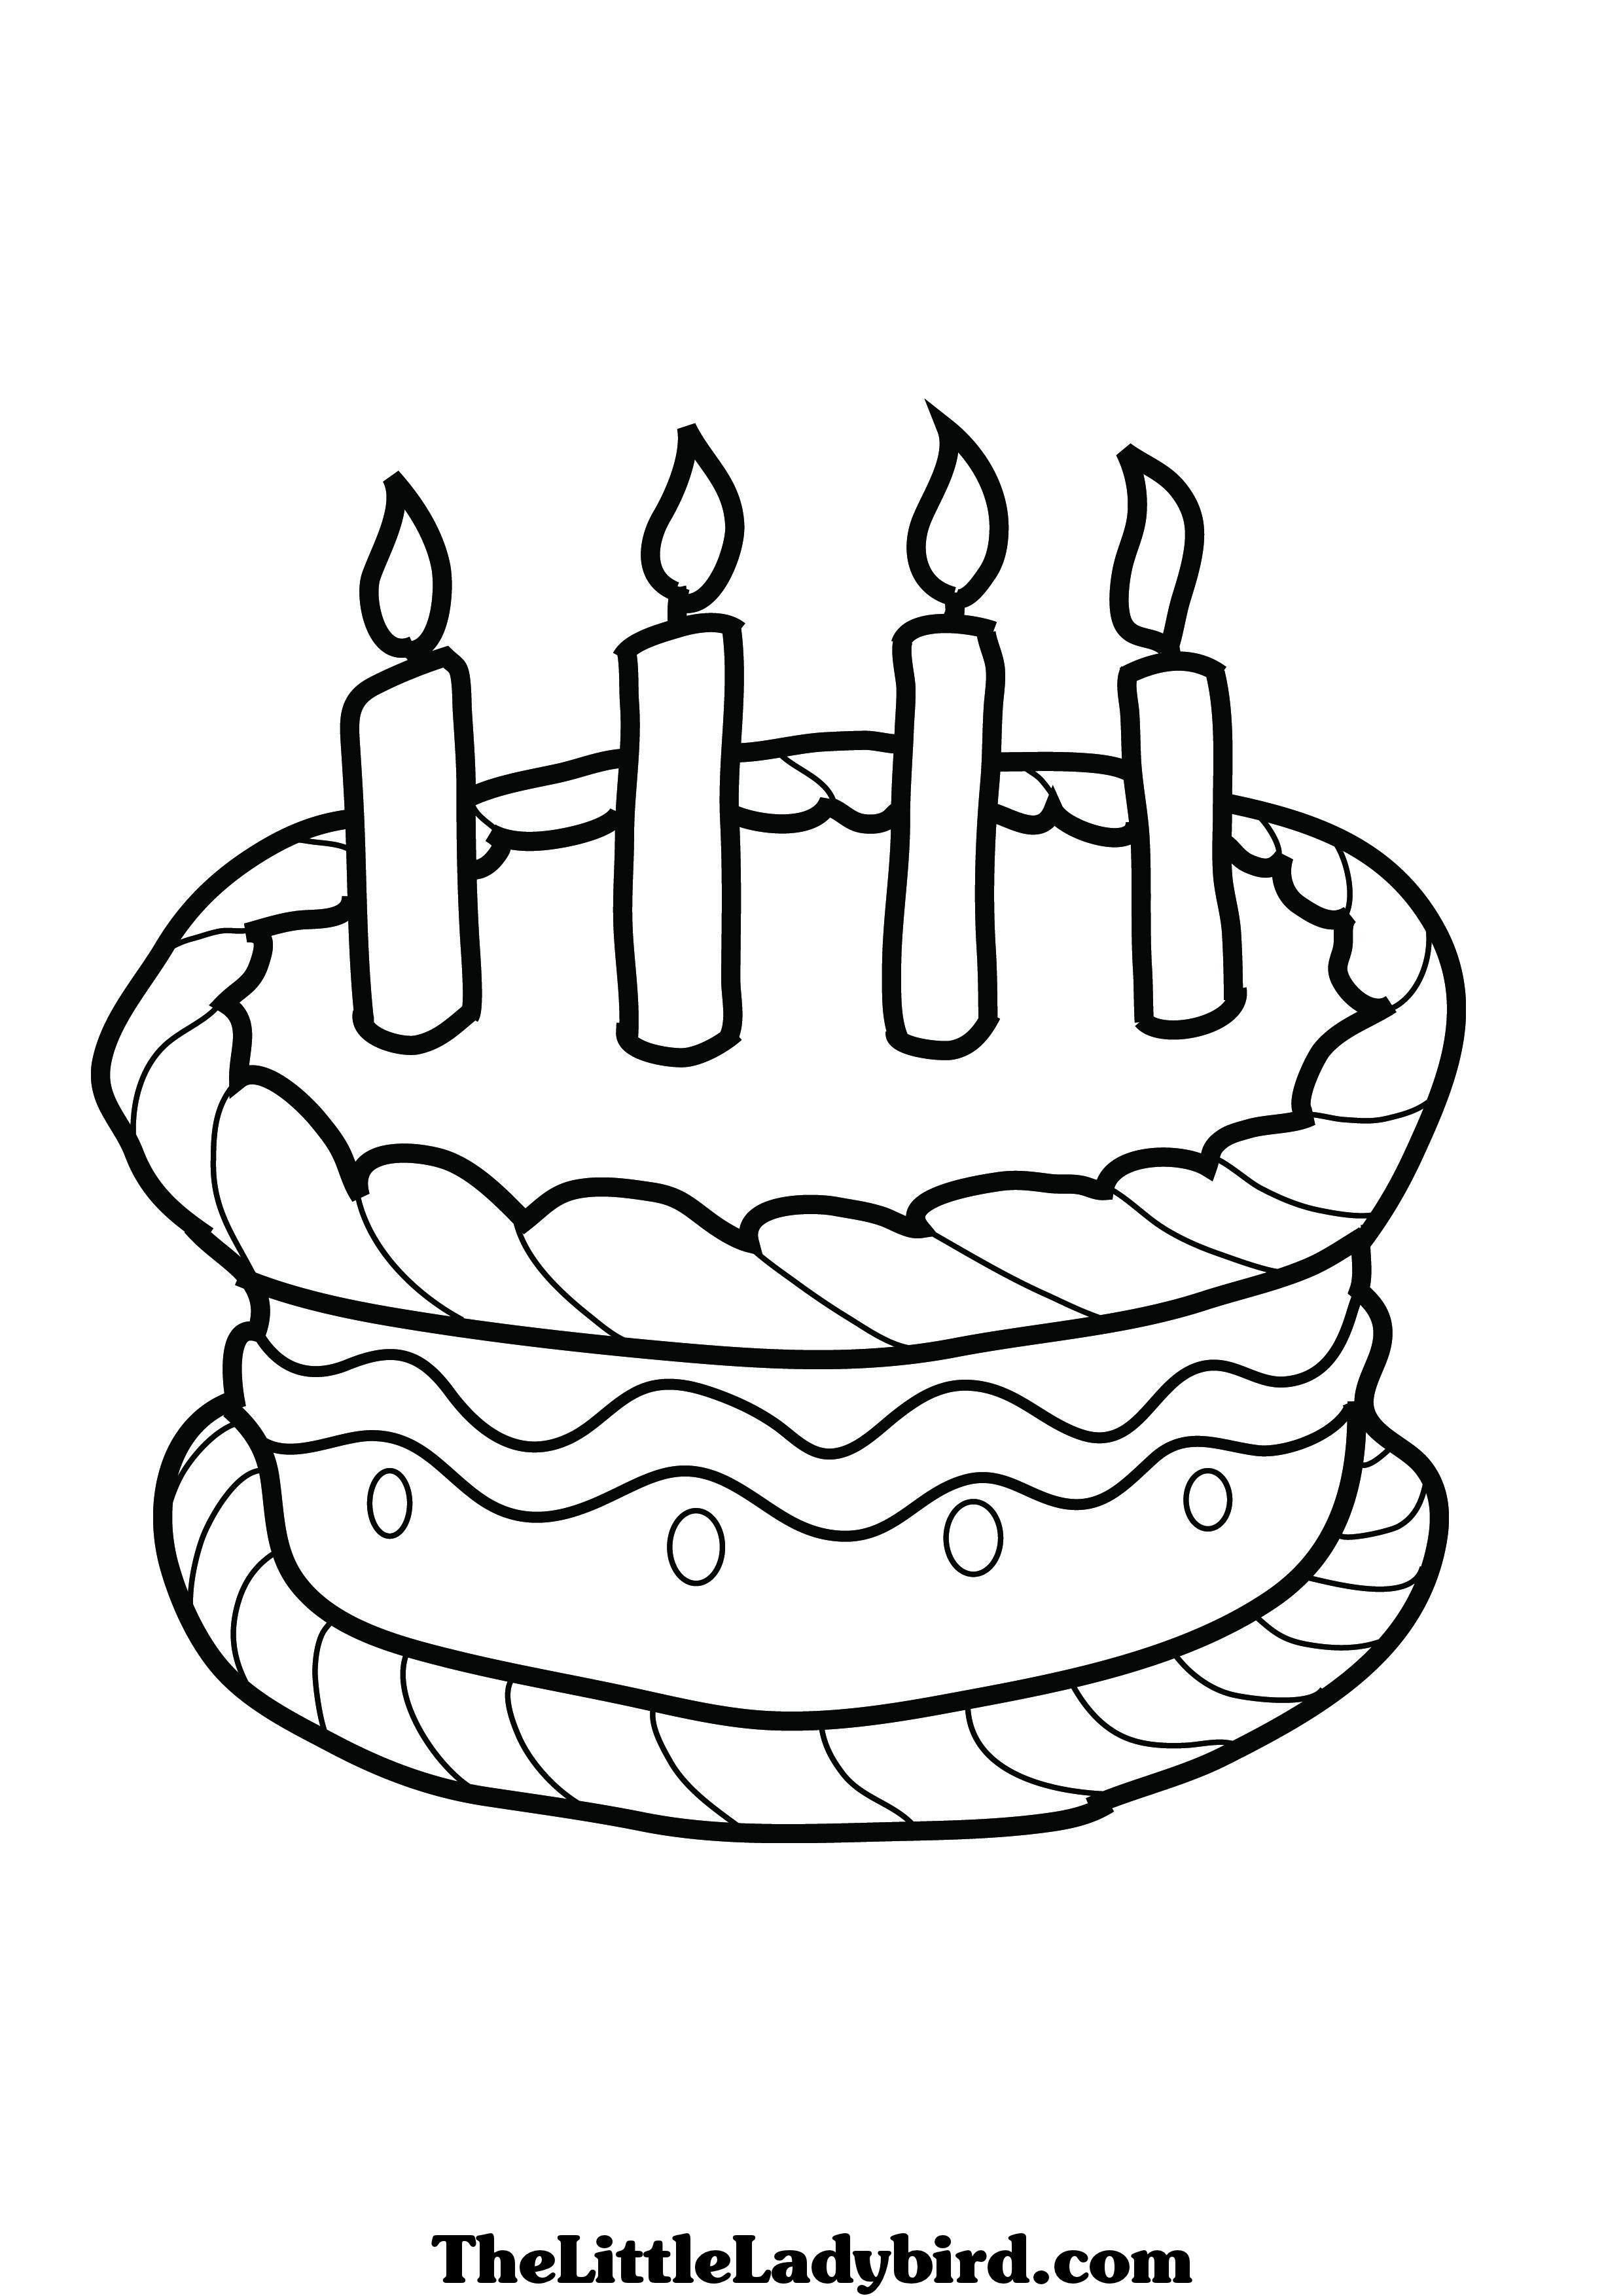 Birthday Cake Coloring Page Pages For Preschoolers To Print Simple